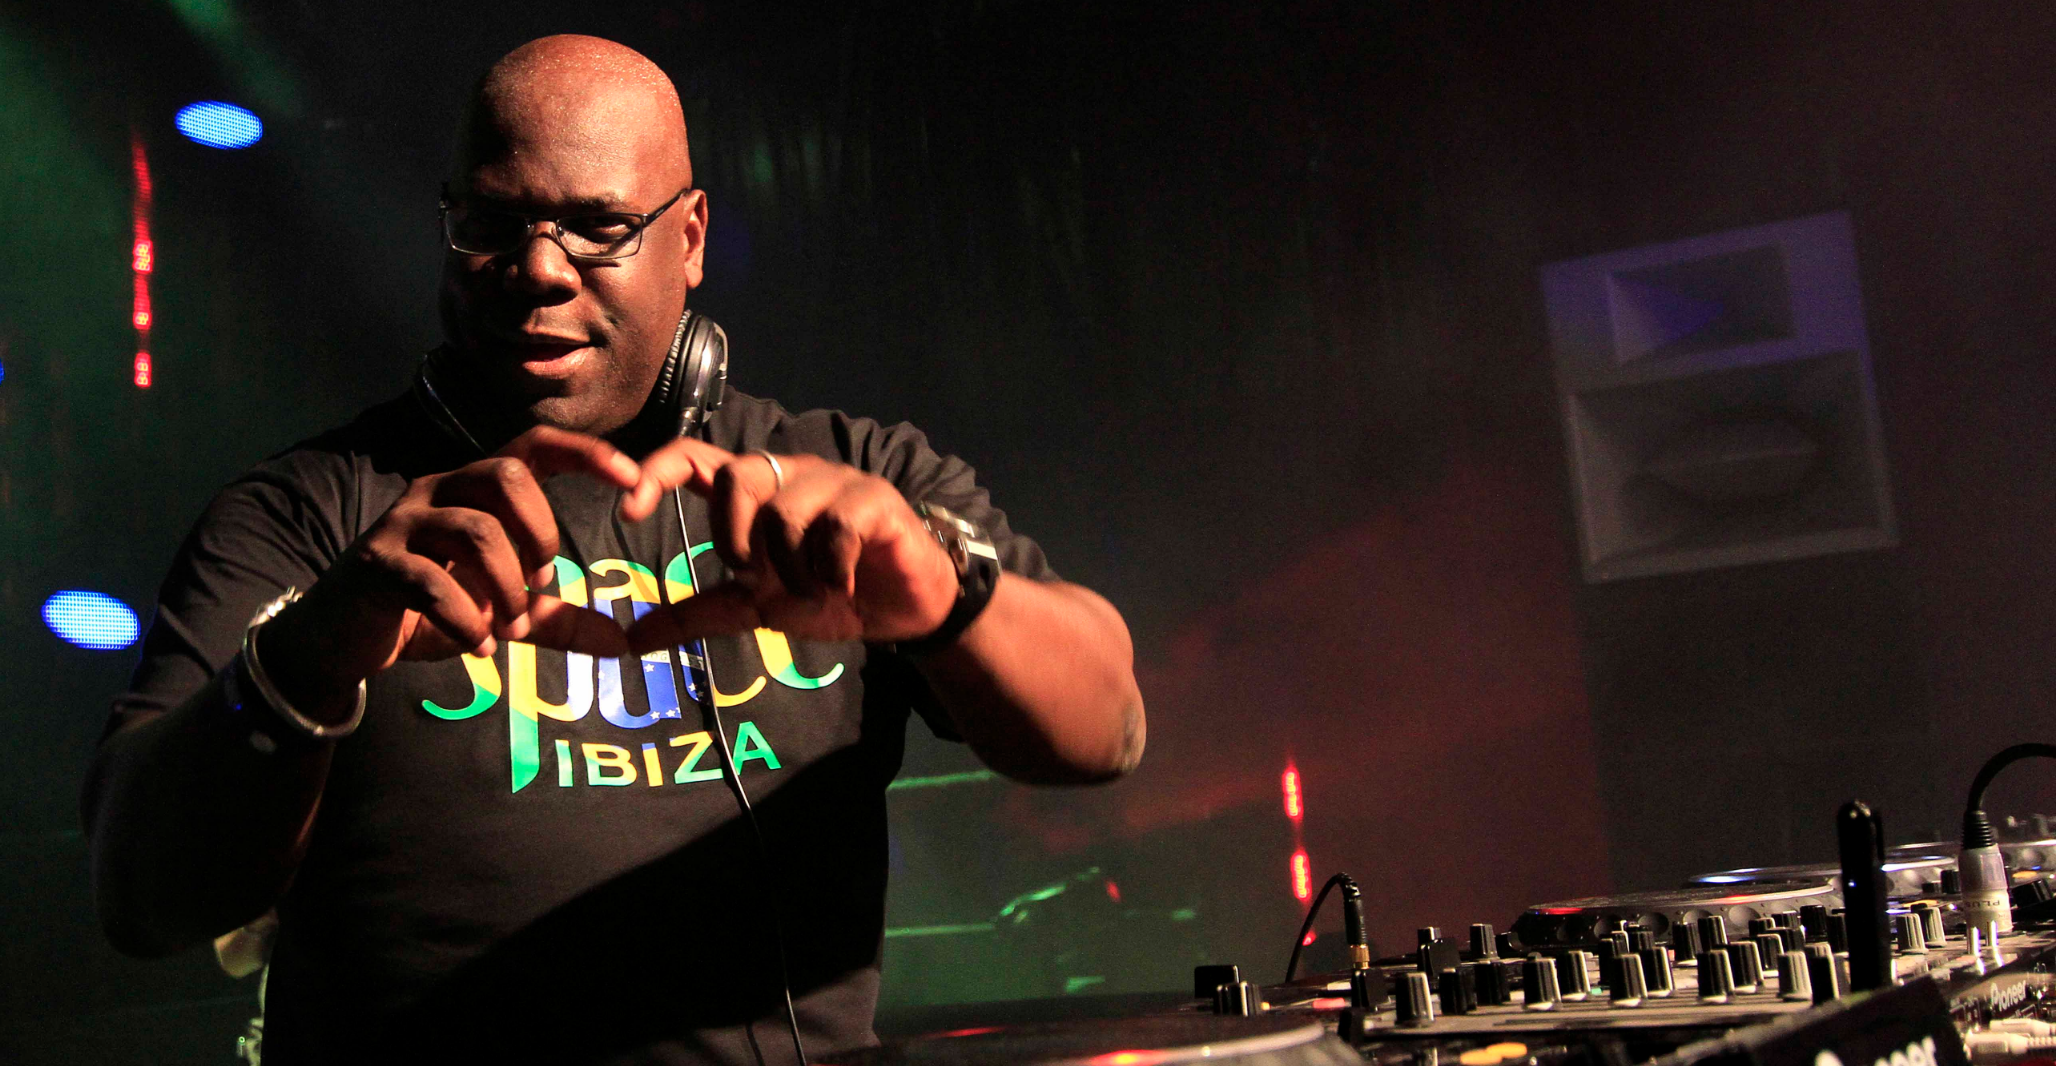 Carl Cox Knocks Our Socks Off at Space